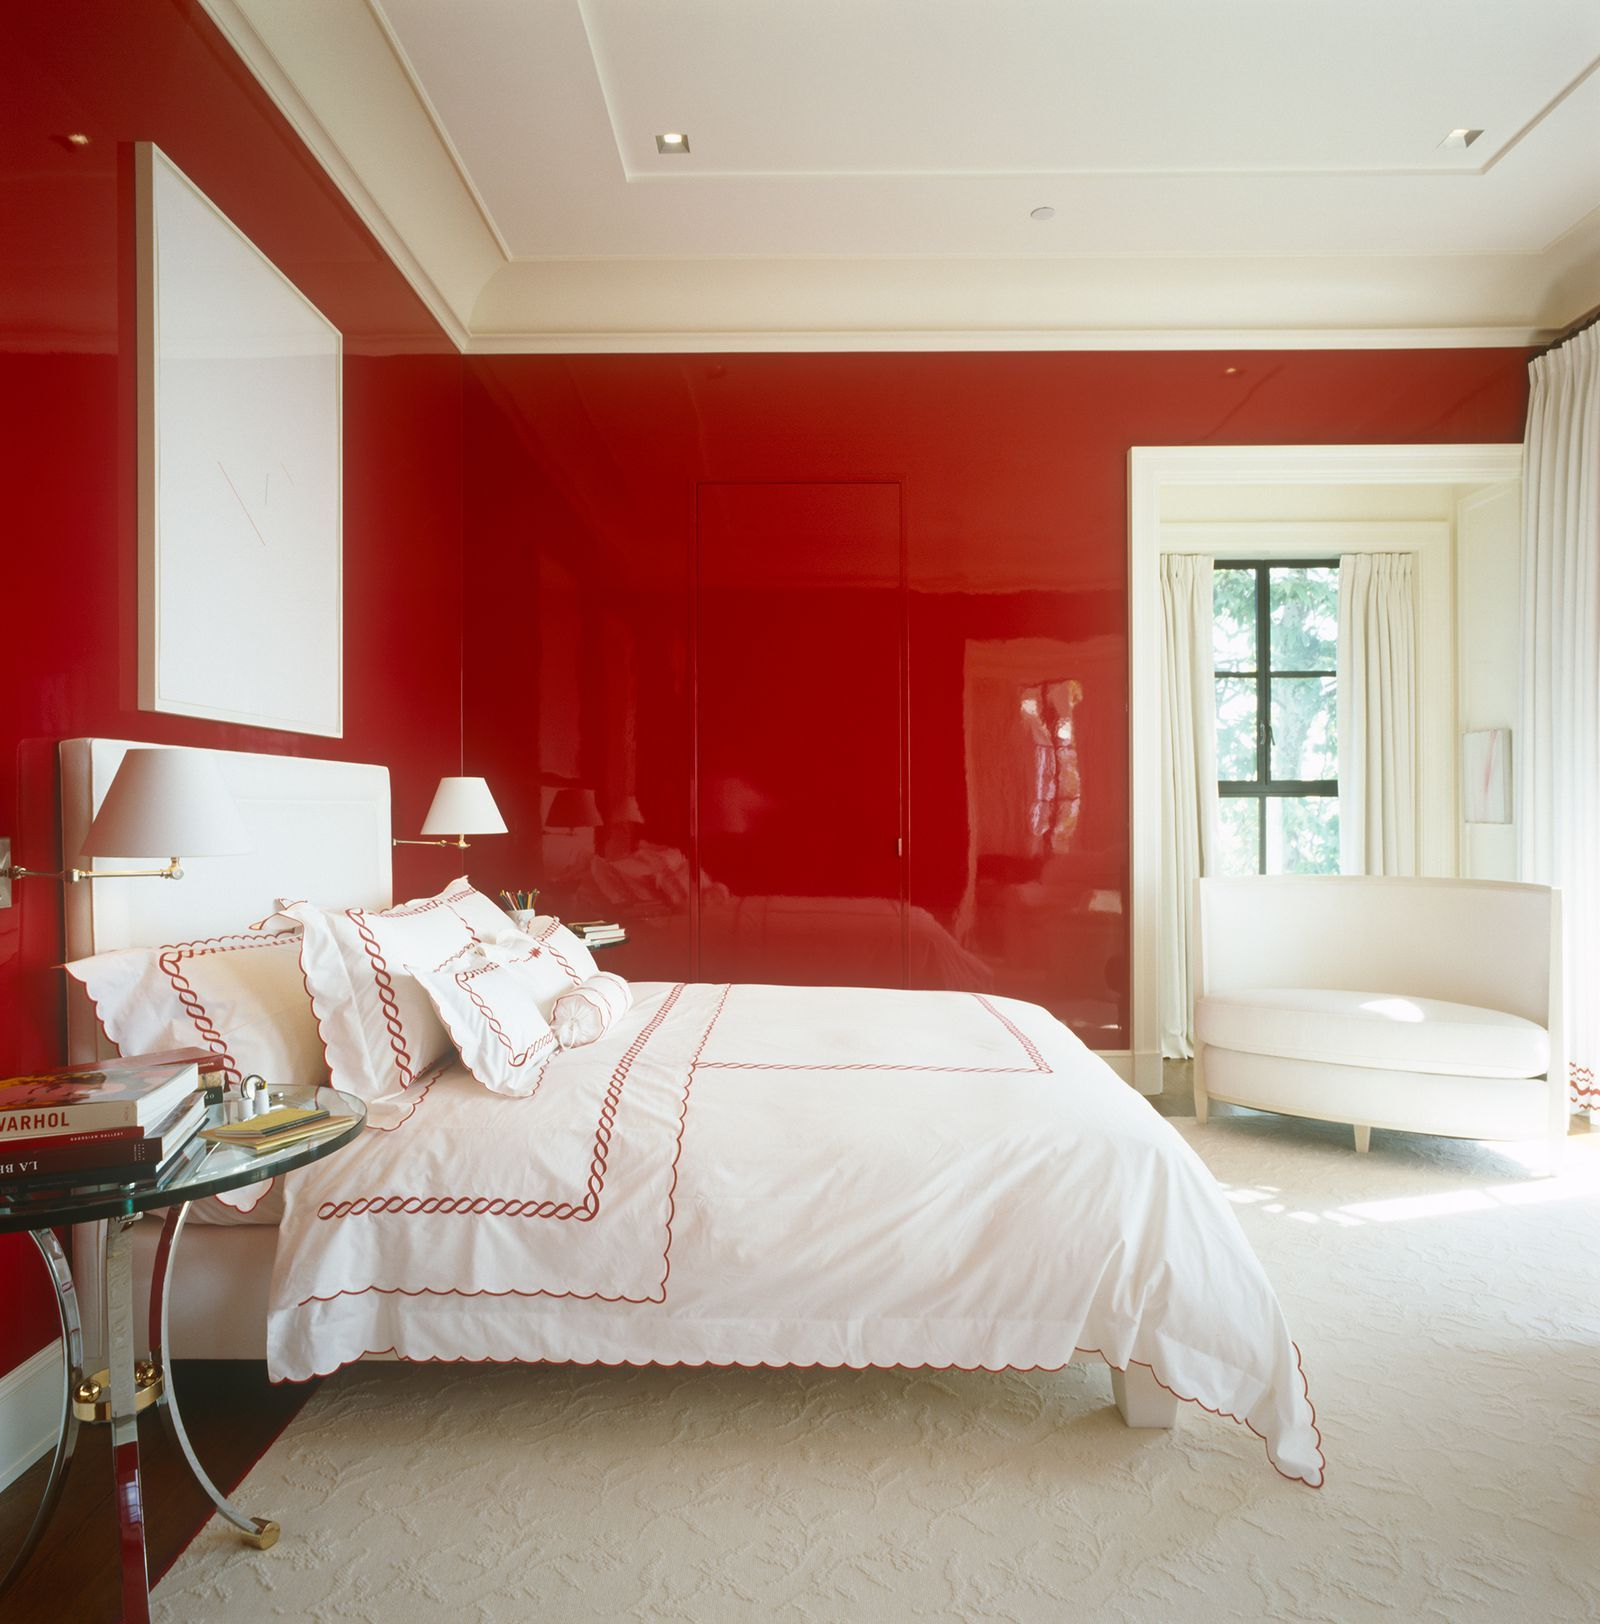 Designers Are Going Nuts Over This Super Glossy Paint Bedroom Red Red Rooms Interior